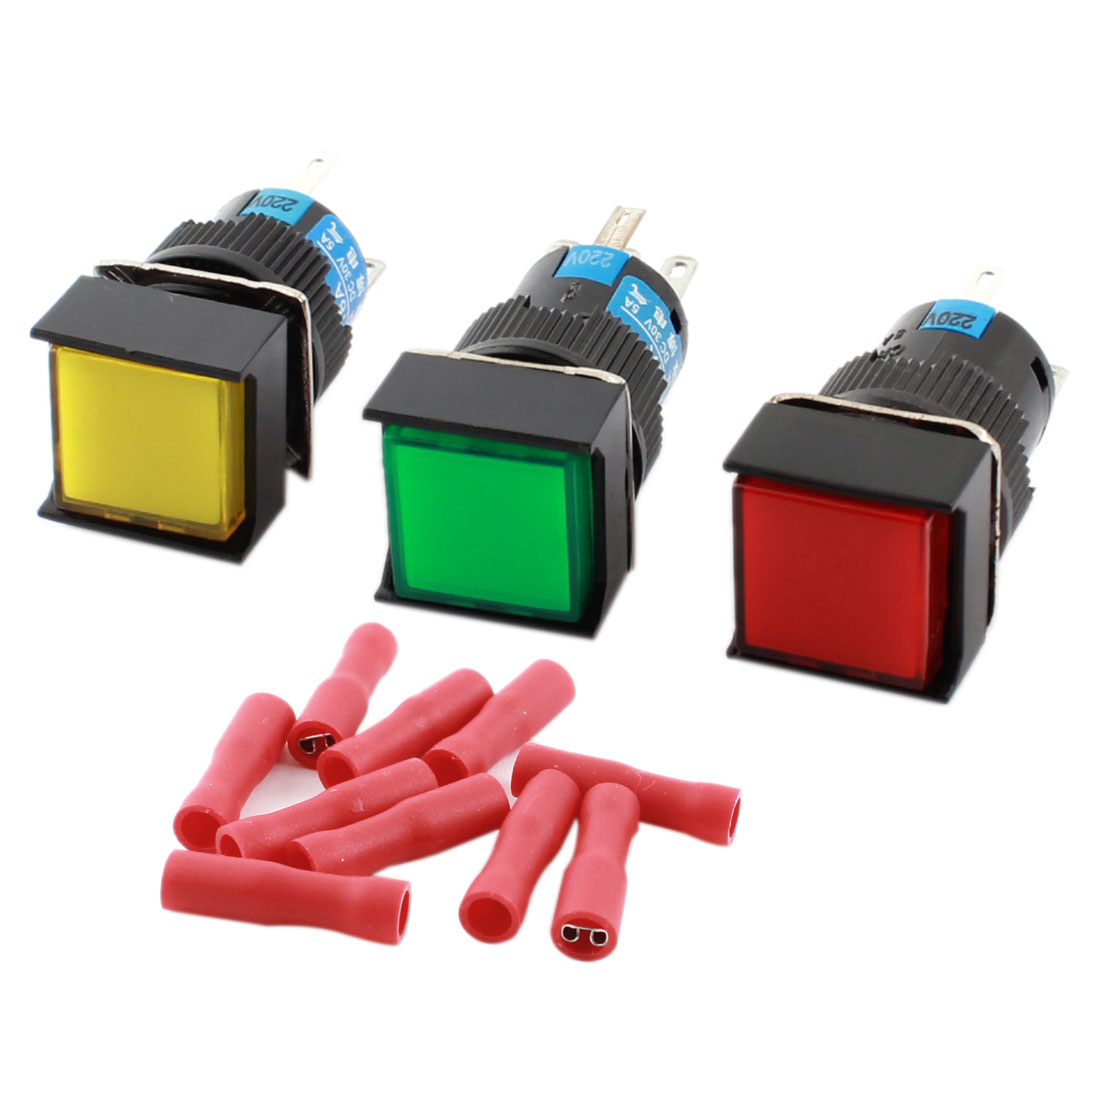 3Pcs AC 220V Red Green Yellow Pilot Light 5Pins 16mm Panel Mount SPDT Momentary Square Pushbutton Switch + 10pcs Crimp Terminals